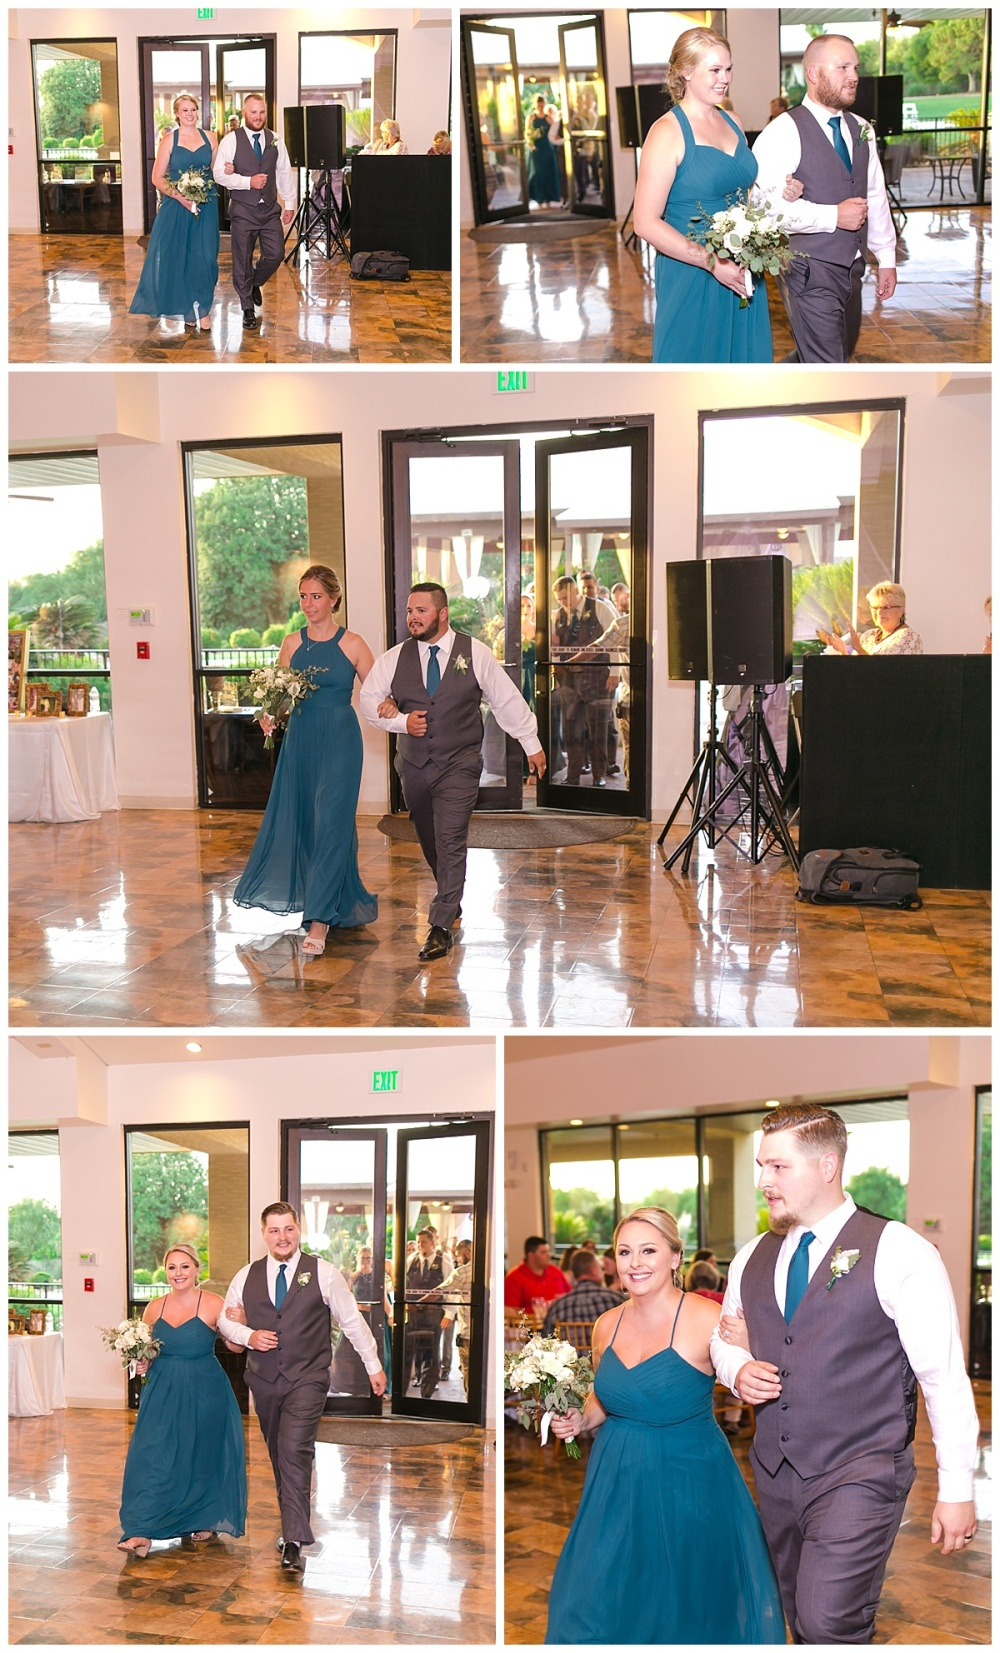 Carly-Barton-Photography-Wedding-Photos-Granberry-Hills-Event-Facility-Ryan-Chelsea-San-Antonio-Texas_0065.jpg